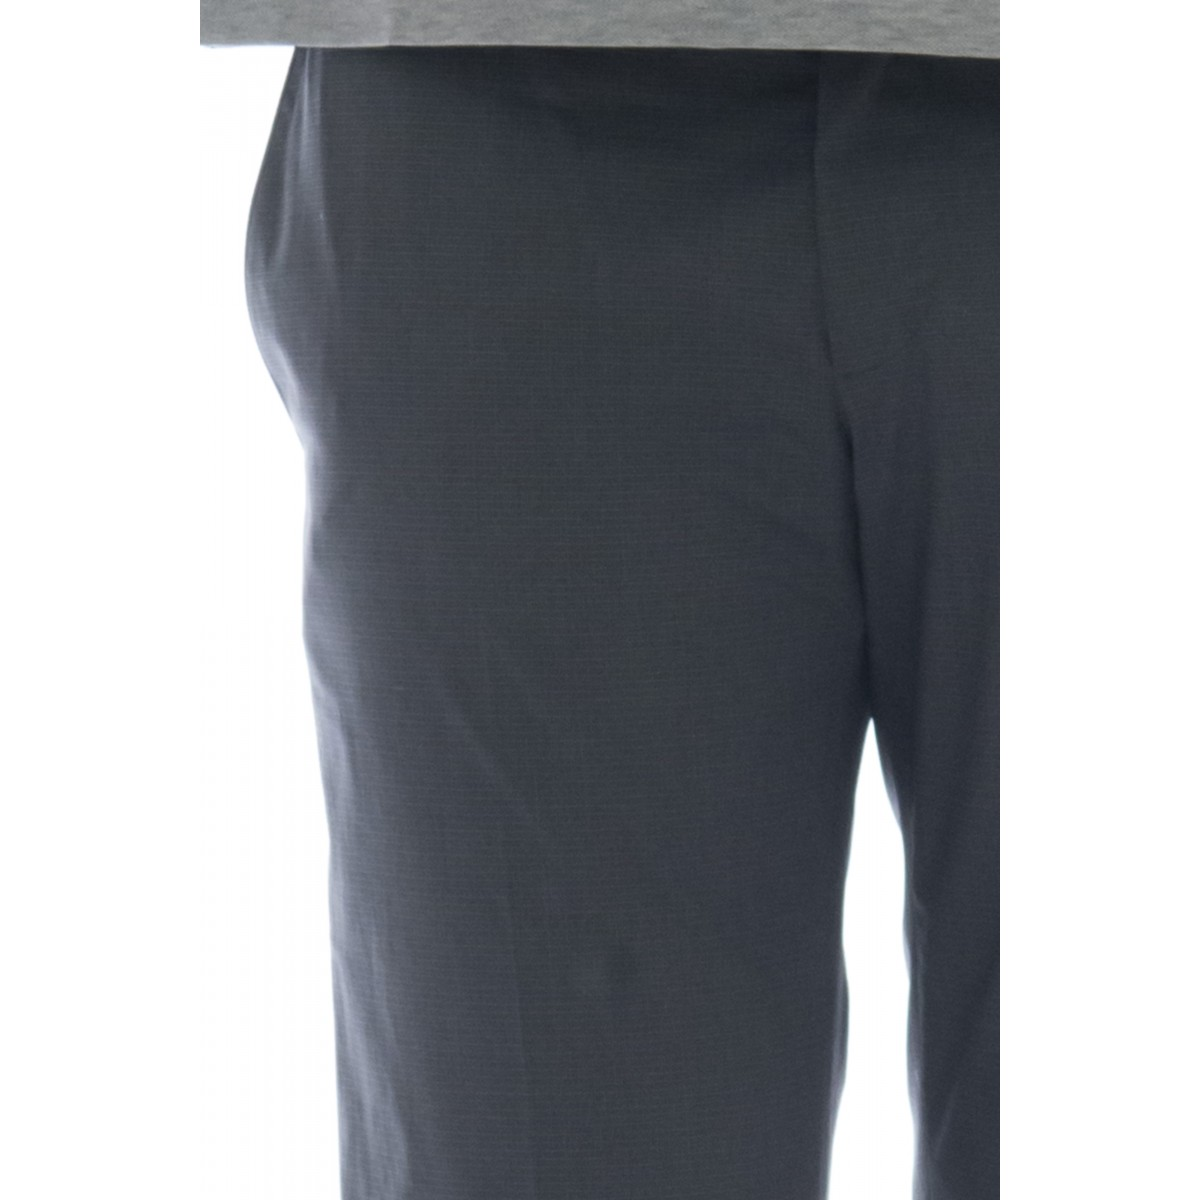 Pantalone uomo - Cods01z00cl1 mp37 cotone super light super slim